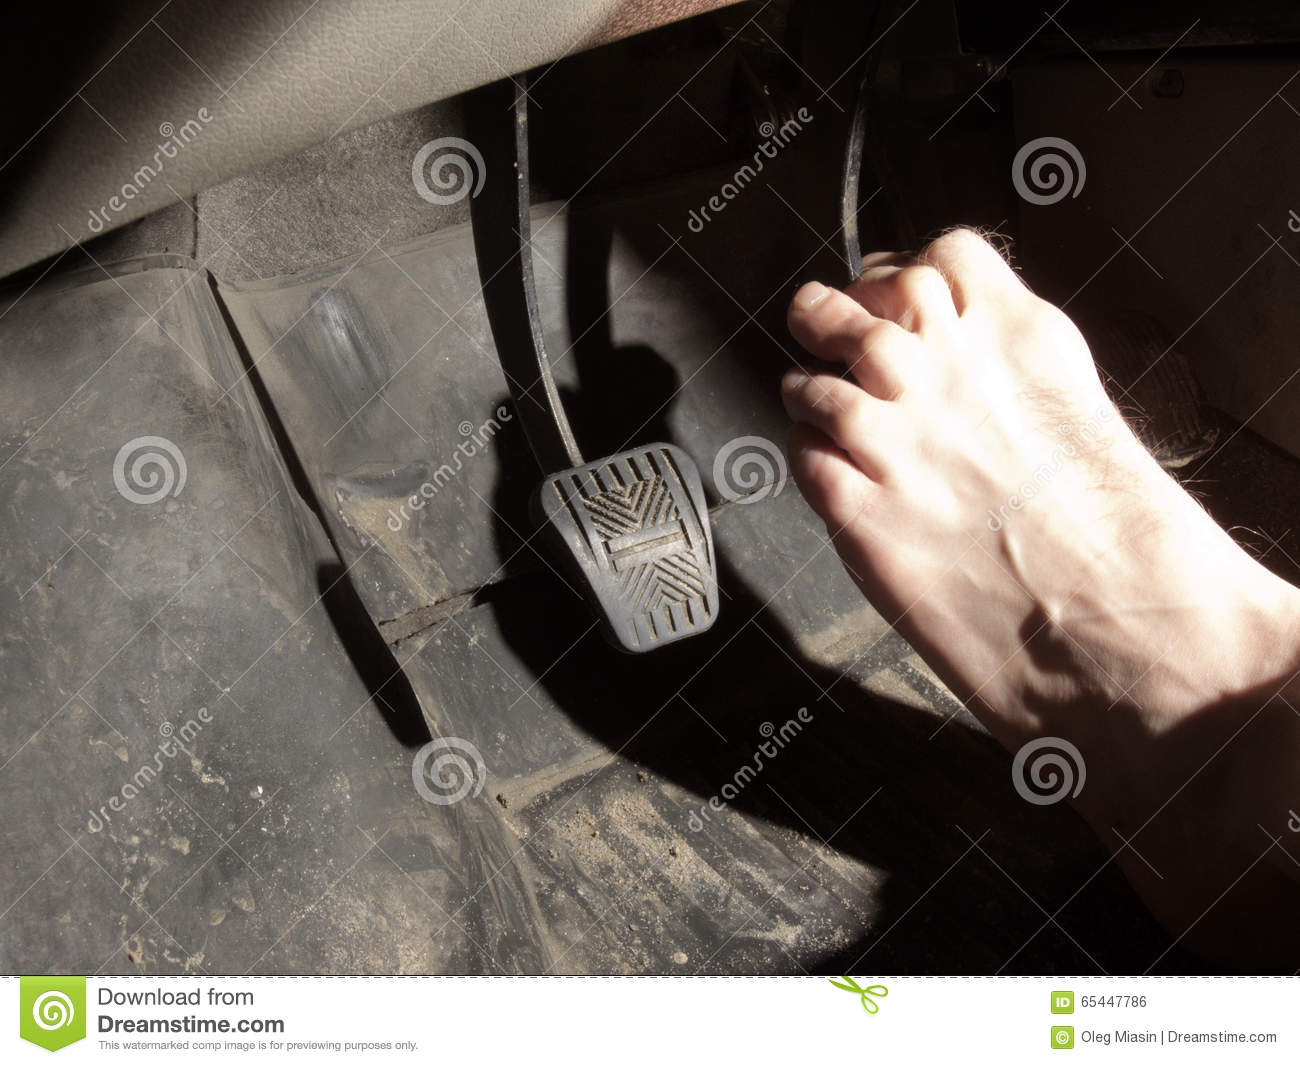 Barefoot Foot On The Brake Pedal Stock Photo Image Of